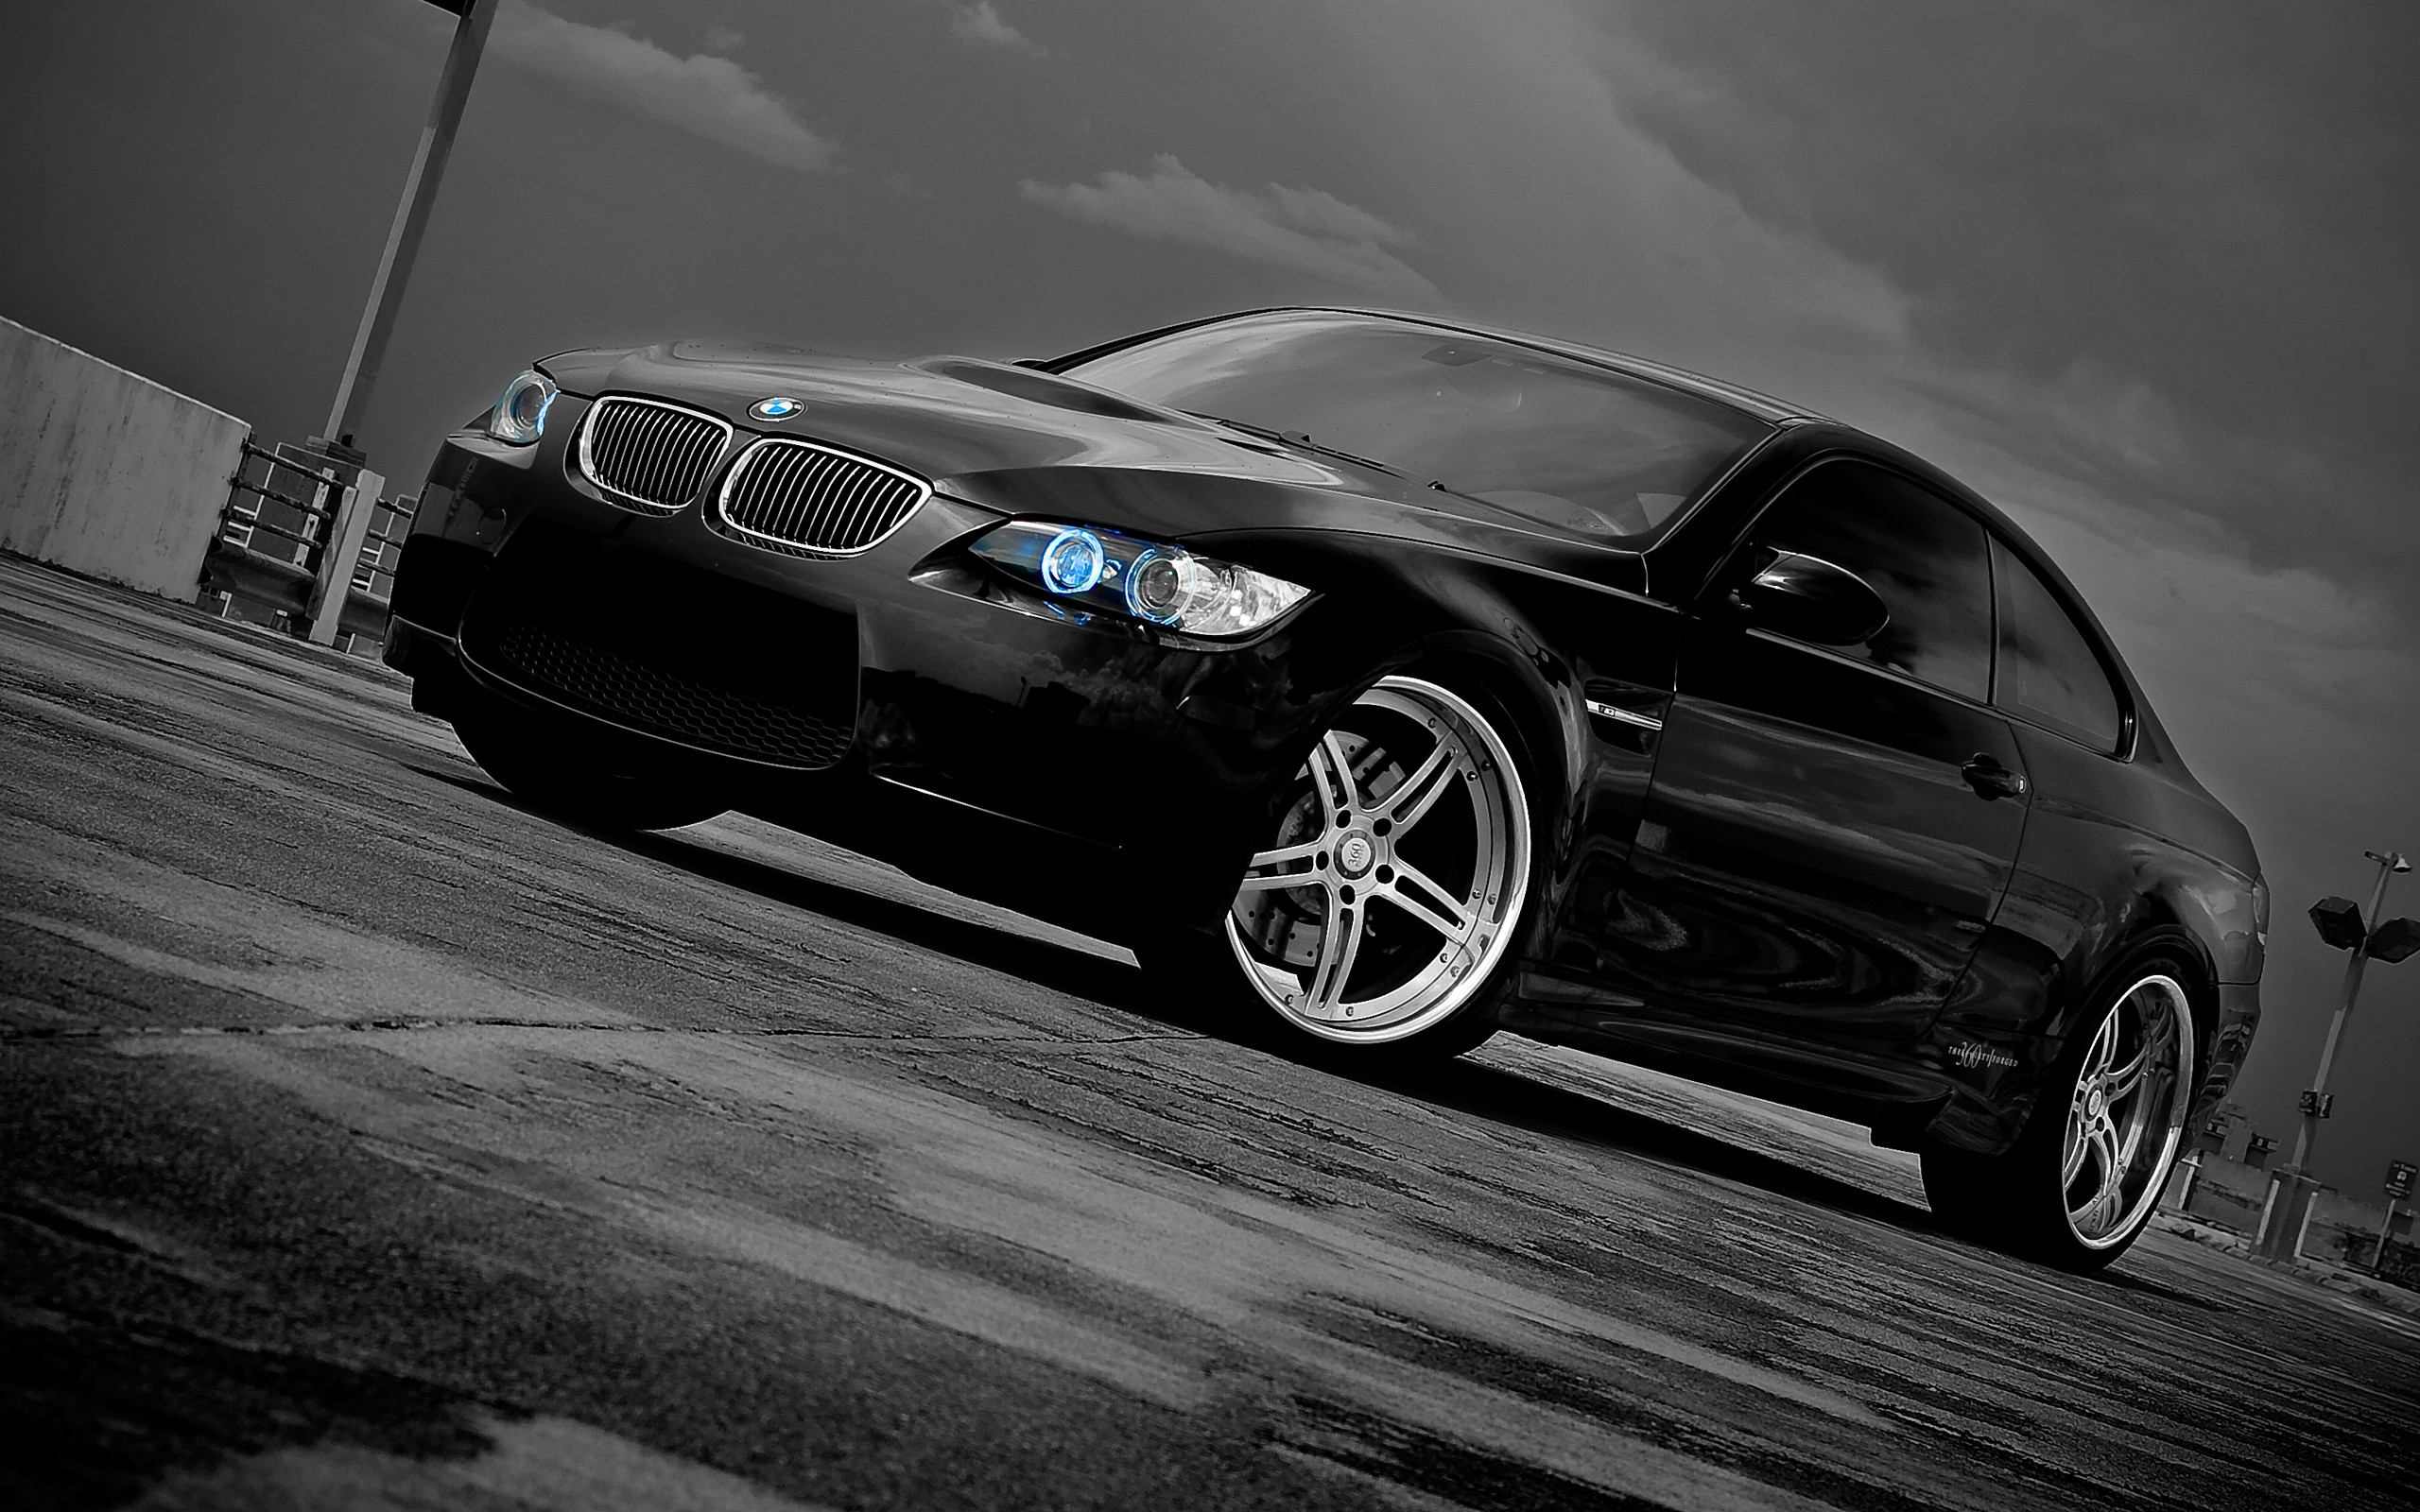 BMW Forged Wheels Wallpaper | HD Car Wallpapers | ID #2696